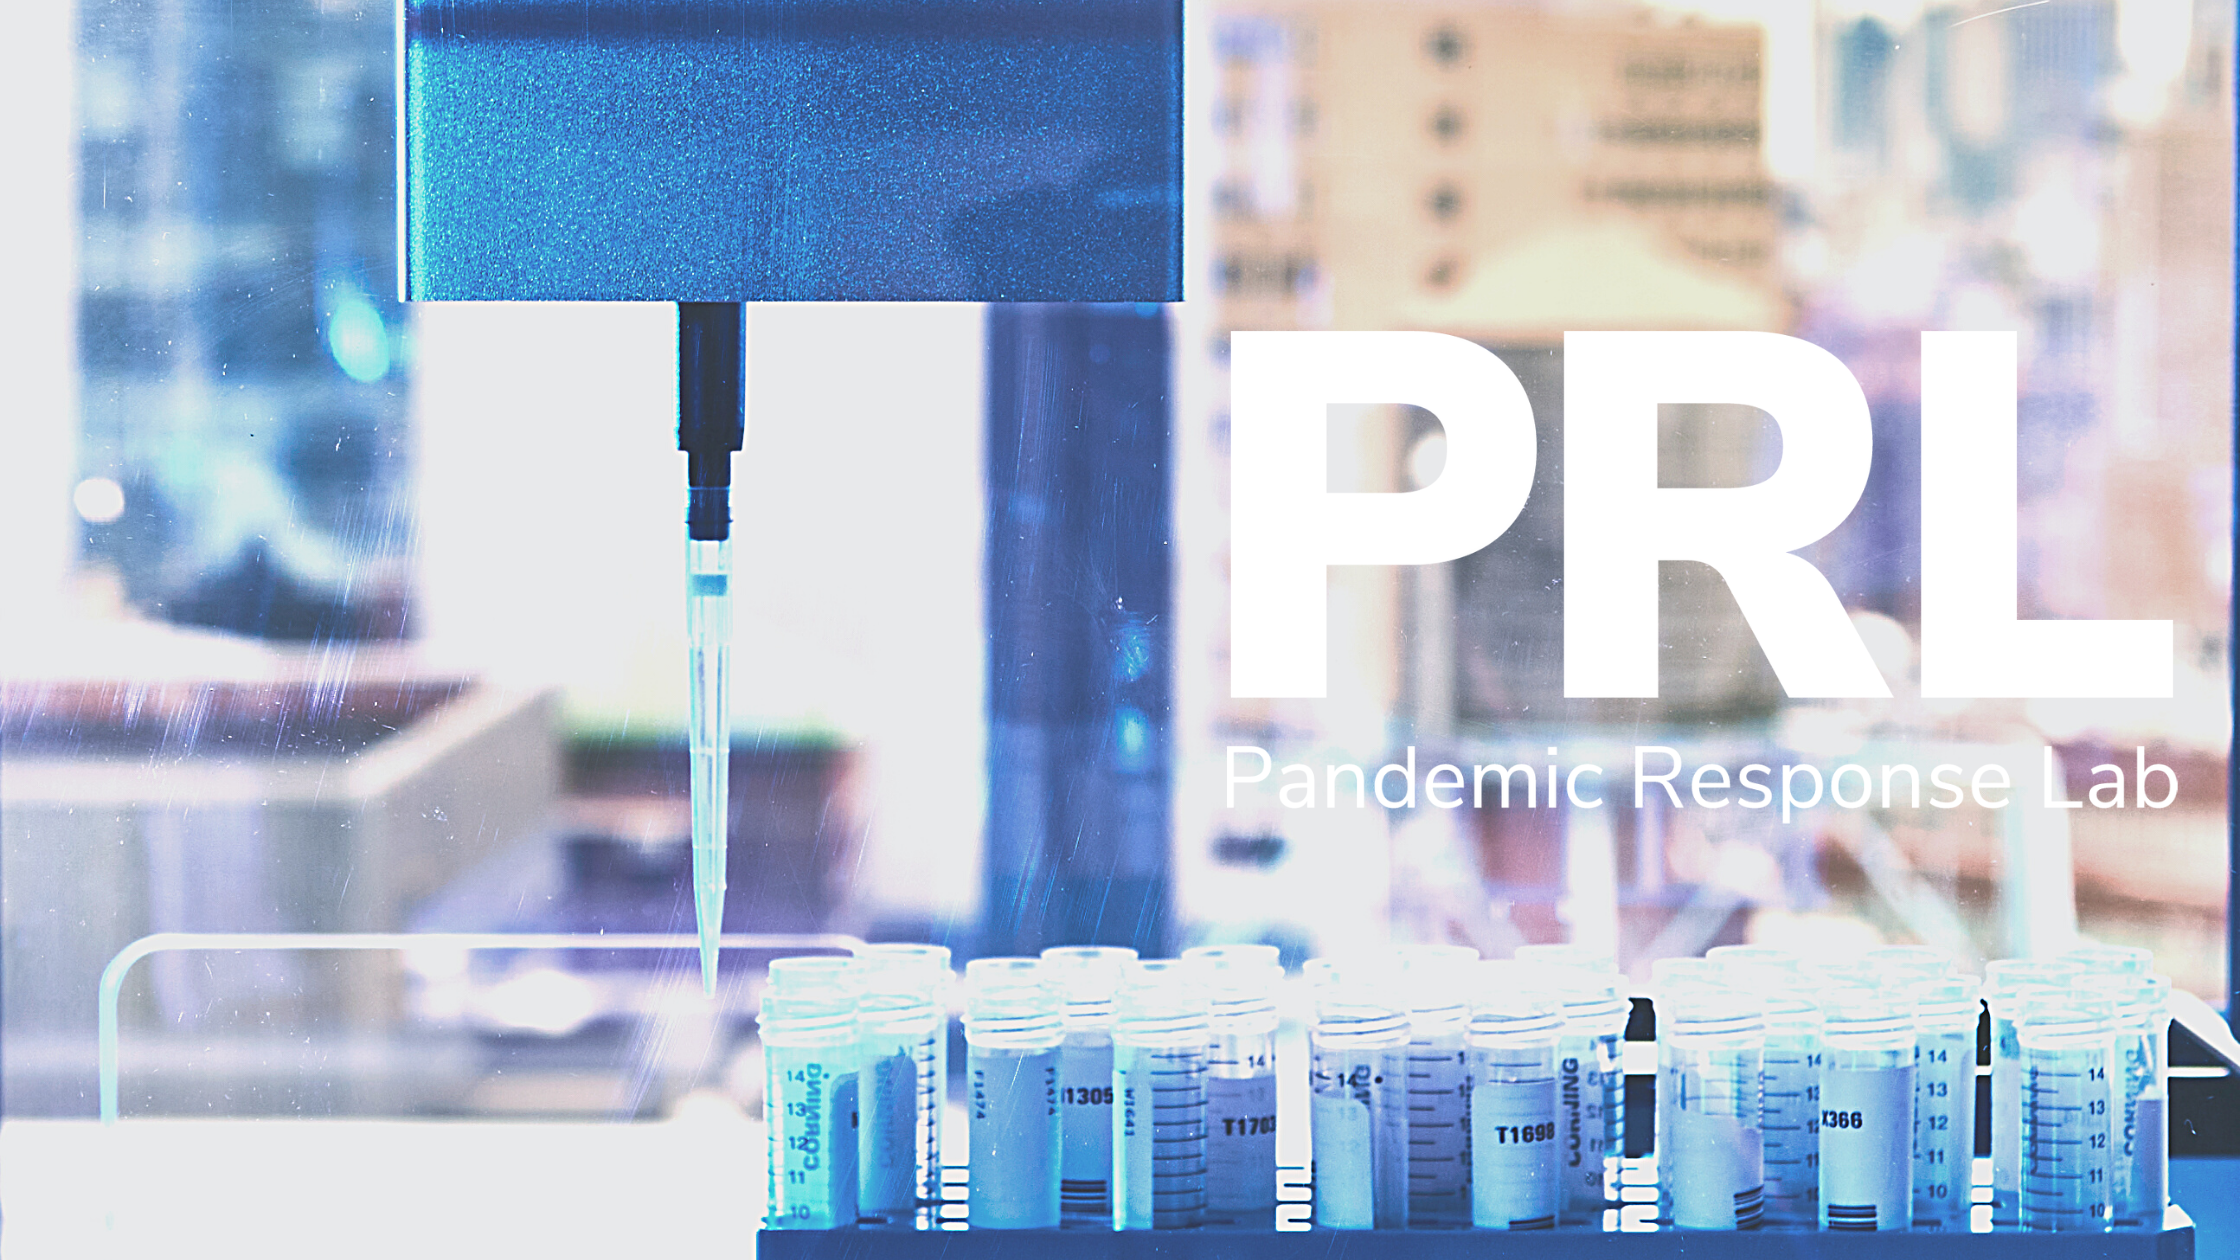 PRESS RELEASE: PANDEMIC RESPONSE LAB (PRL) & CIC HEALTH PARTNER TO PROVIDE COVID-19 TESTING FOR NATION'S SCHOOLS